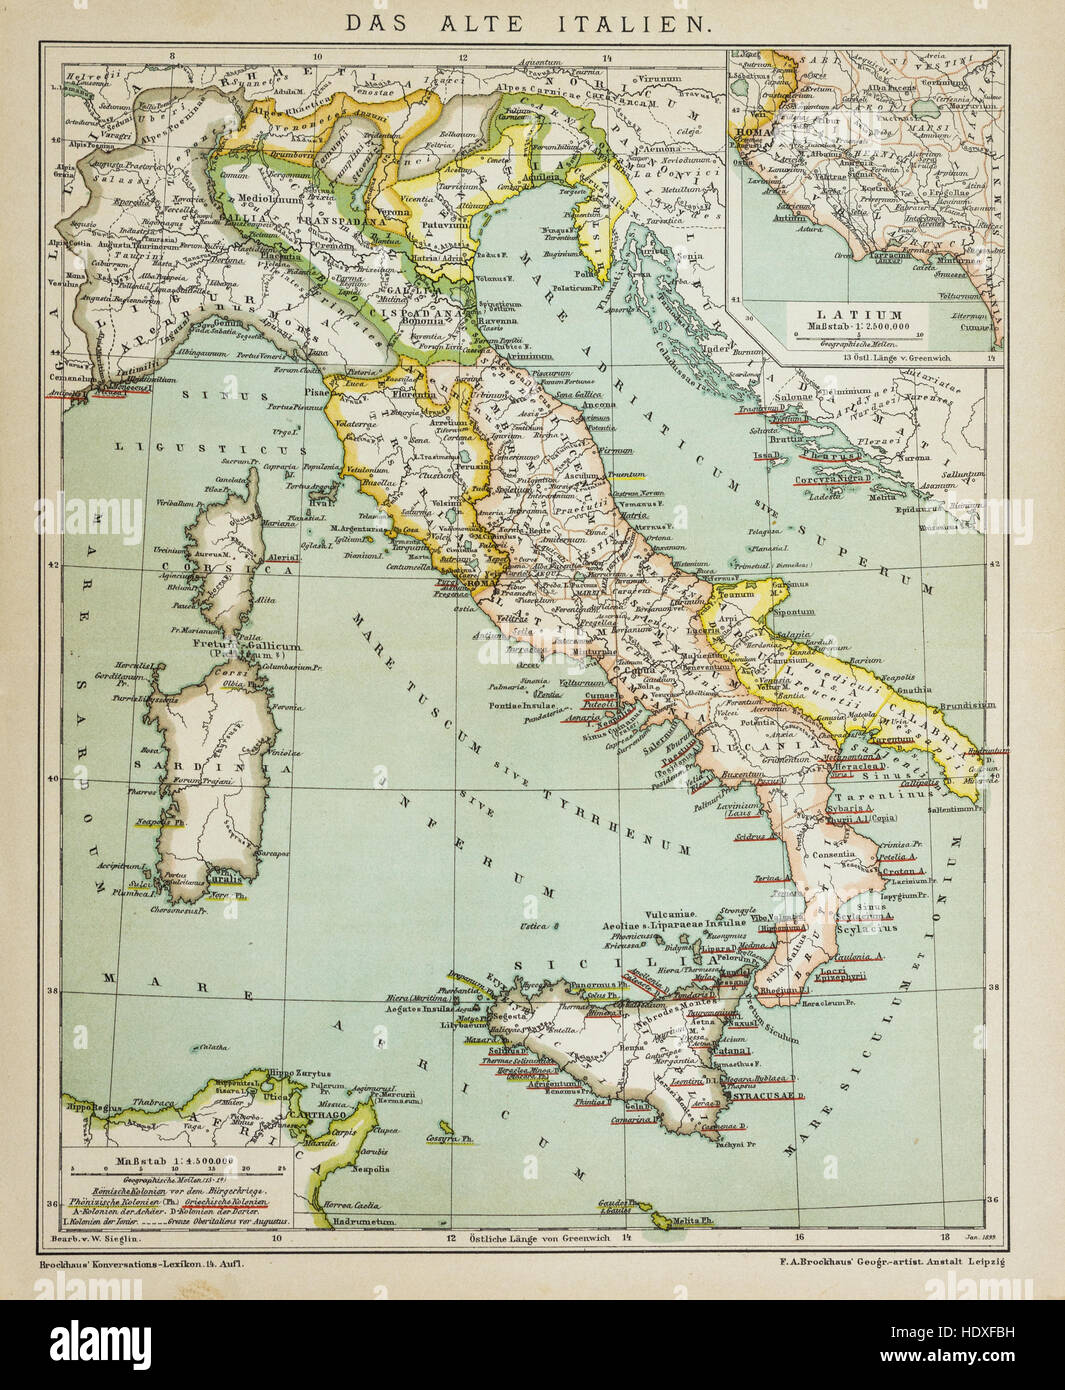 Old vintage map of Italy in the 19th century - Stock Image